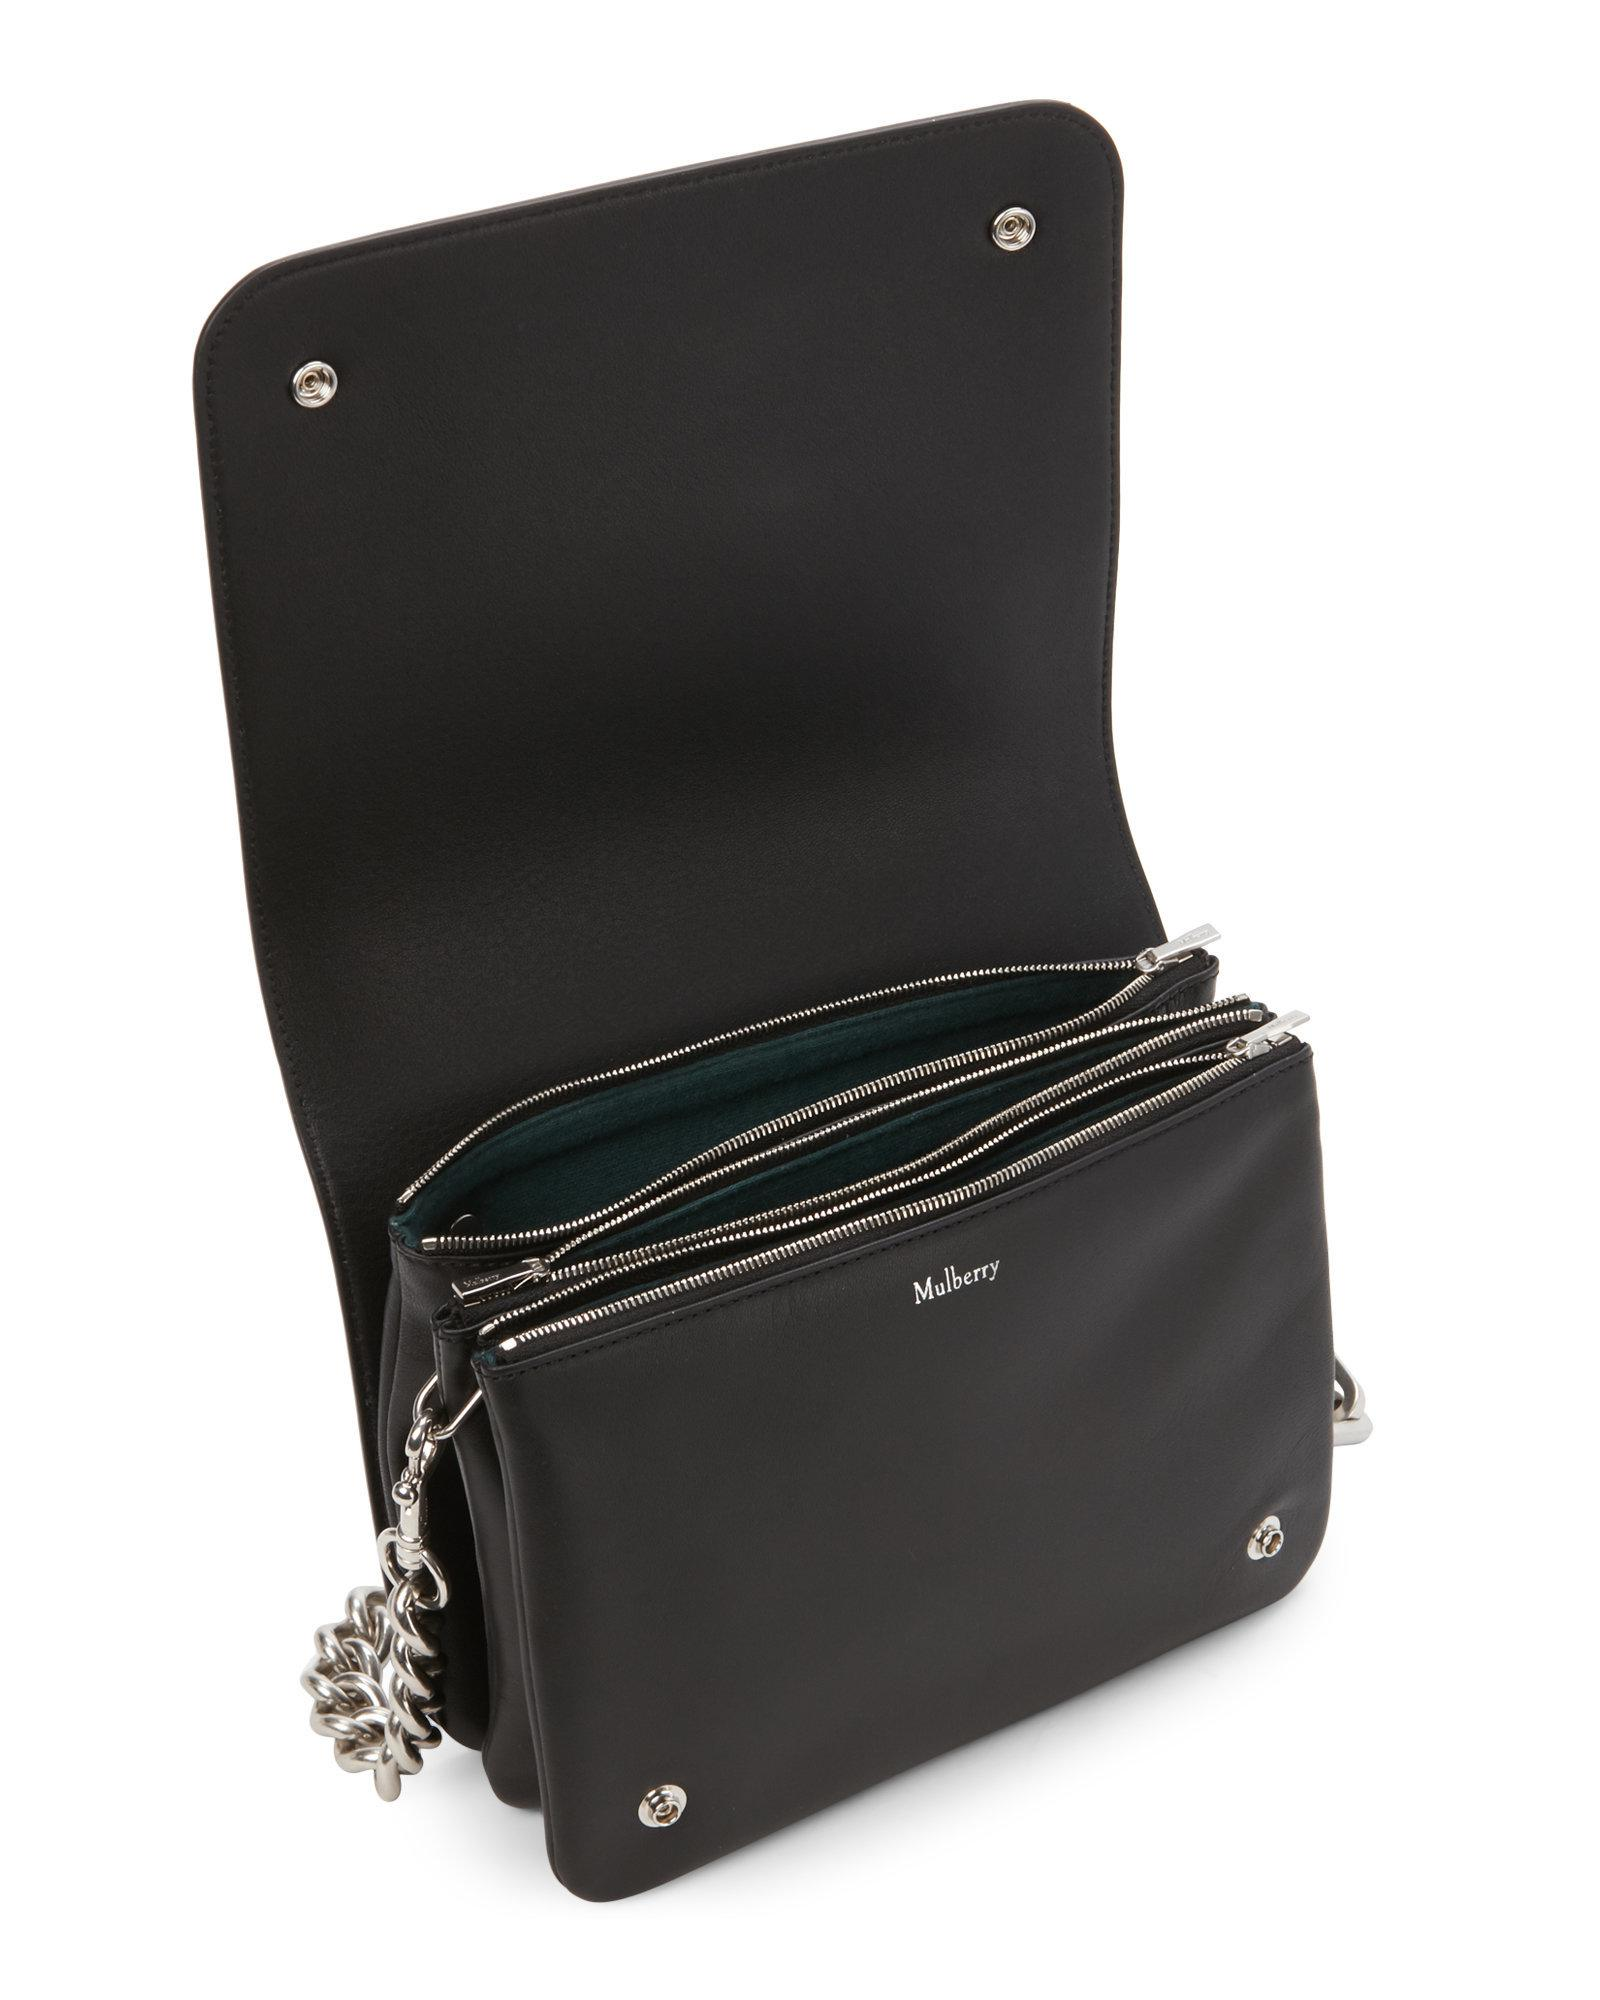 fbac73a863 ... sale lyst mulberry clifton leather shoulder bag in black f929b 58a97